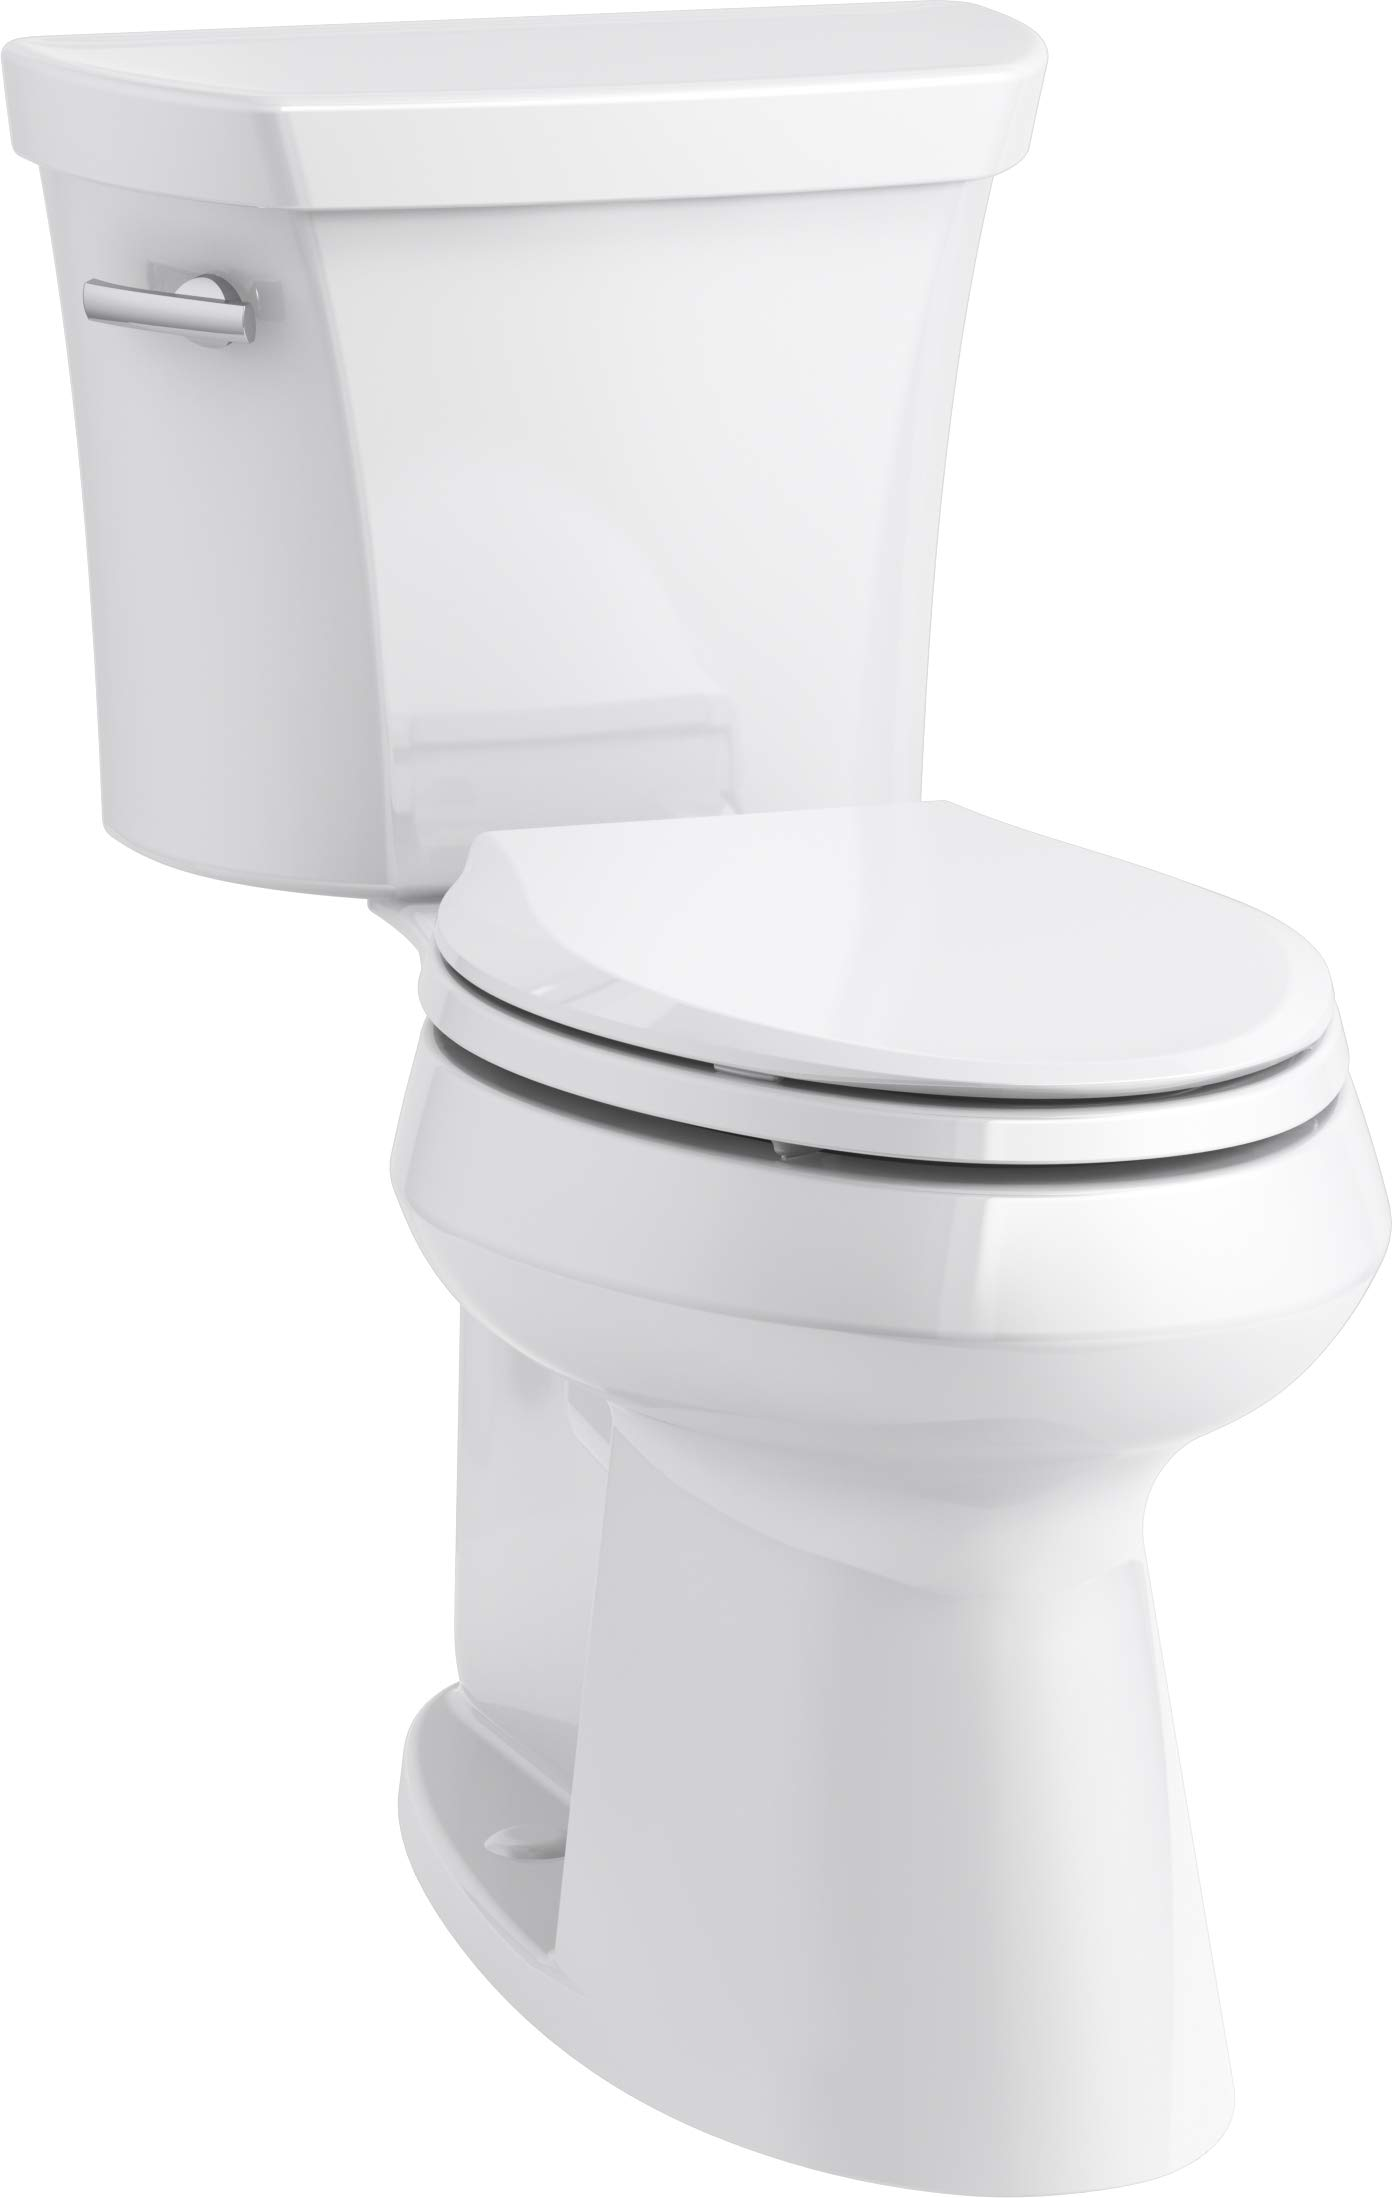 KOHLER K-76301-0 Highline Concealed Trapway Comfort Height Two-Piece Elongated 1.28 GPF Toilet with Class Five Flush Technology and Left-Hand Trip Lever, White, by Kohler